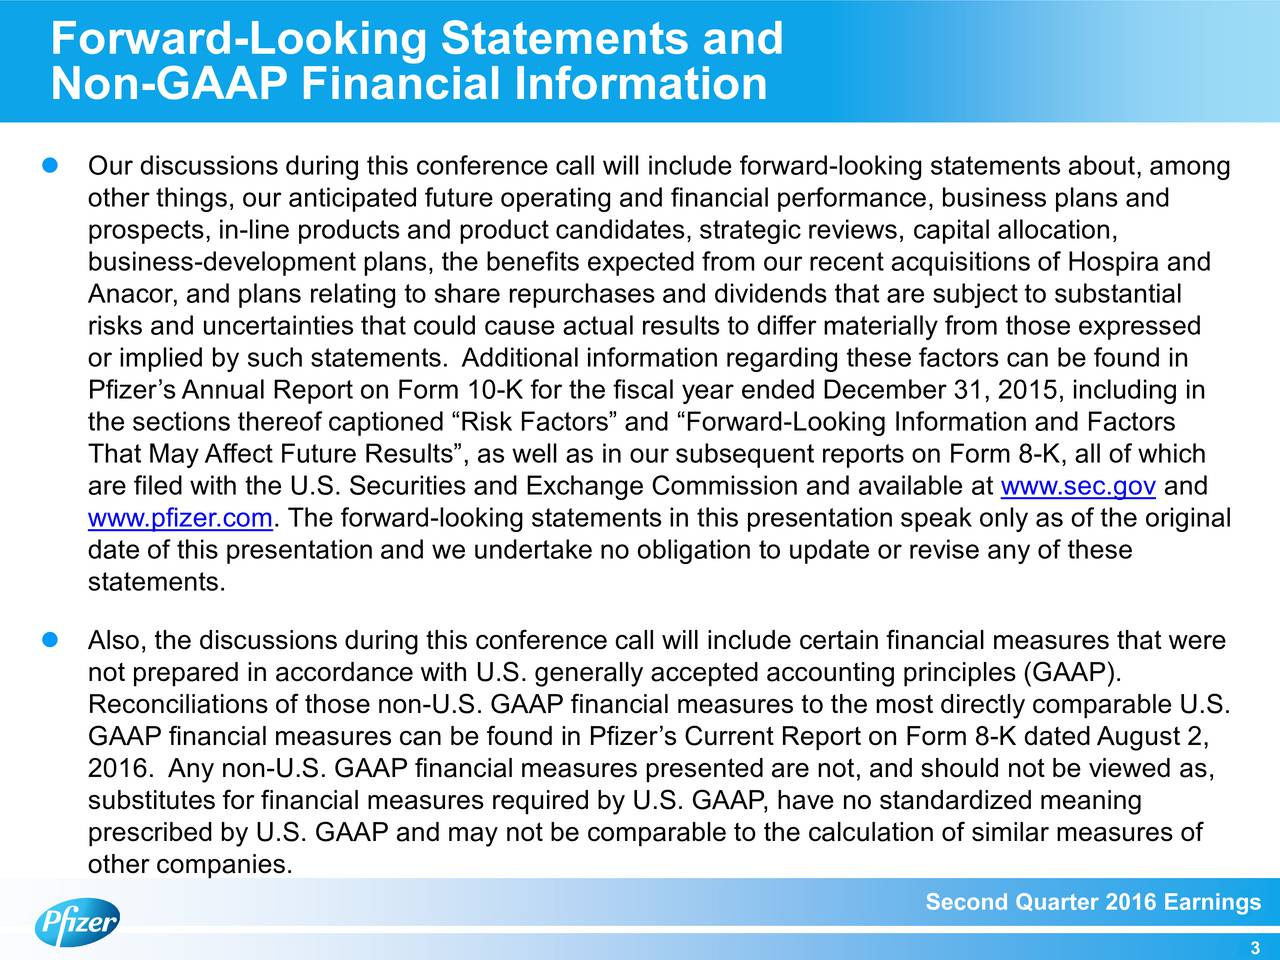 Non-GAAP Financial Information Our discussions during this conference call will include forward-looking statements about, among other things, our anticipated future operating and financial performance, business plans and prospects, in-line products and product candidates, strategic reviews, capital allocation, business-development plans, the benefits expected from our recent acquisitions of Hospira and Anacor, and plans relating to share repurchases and dividends that are subject to substantial risks and uncertainties that could cause actual results to differ materially from those expressed or implied by such statements. Additional information regarding these factors can be found in Pfizers Annual Report on Form 10-K for the fiscal year ended December 31, 2015, including in the sections thereof captioned Risk Factors and Forward-Looking Information and Factors That May Affect Future Results, as well as in our subsequent reports on Form 8-K, all of which are filed with the U.S. Securities and Exchange Commission and available at www.sec.gov and www.pfizer.com. The forward-looking statements in this presentation speak only as of the original date of this presentation and we undertake no obligation to update or revise any of these statements. Also, the discussions during this conference call will include certain financial measures that were not prepared in accordance with U.S. generally accepted accounting principles (GAAP). Reconciliations of those non-U.S. GAAP financial measures to the most directly comparable U.S. GAAP financial measures can be found in Pfizers Current Report on Form 8-K dated August2, 2016. Any non-U.S. GAAP financial measures presented are not, and should not be viewed as, substitutes for financial measures required by U.S. GAAP, have no standardized meaning prescribed by U.S. GAAP and may not be comparable to the calculation of similar measures of other companies. Second Quarter 2016 Earnings